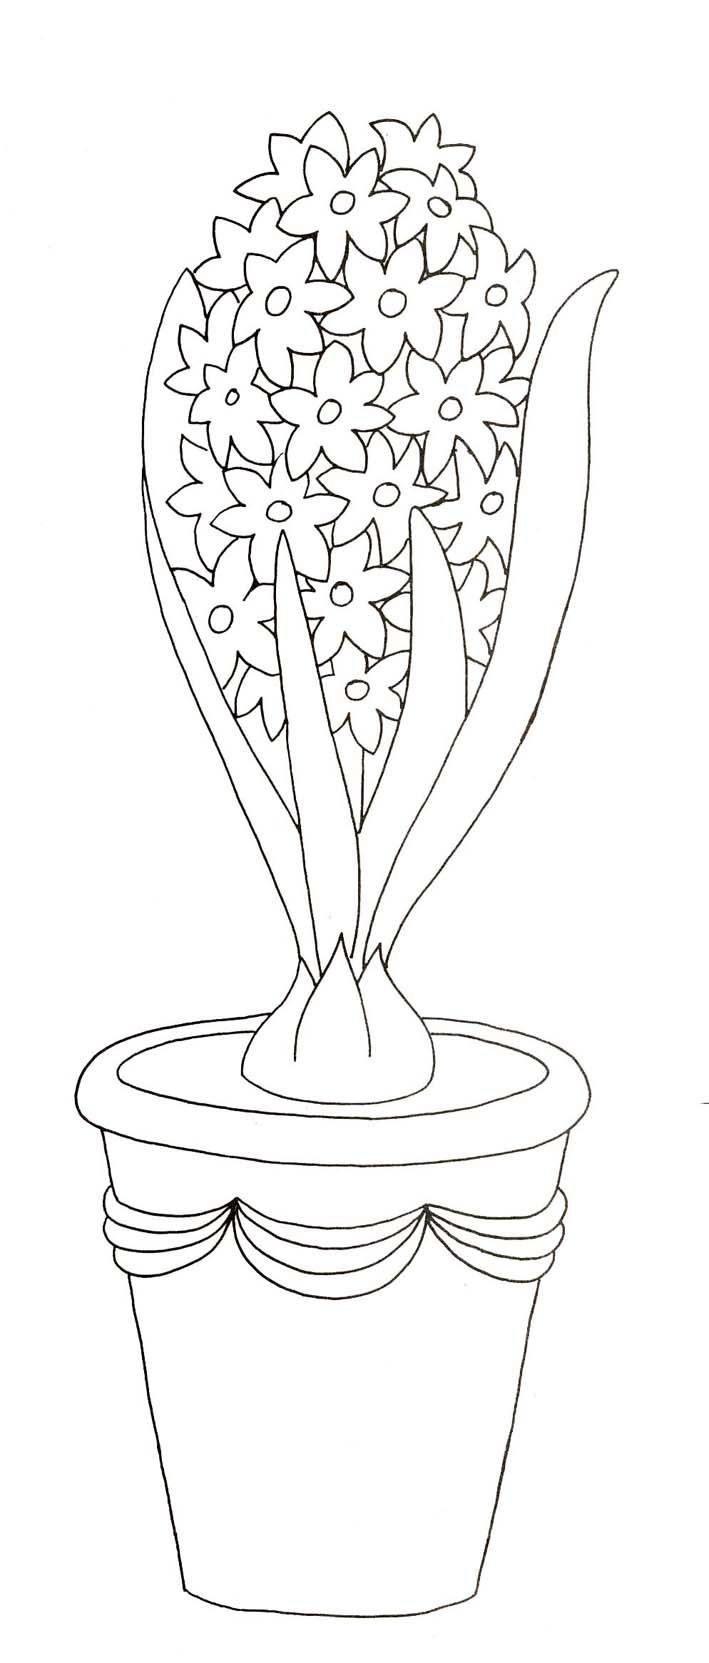 225 best images about Spring coloring pages on Pinterest